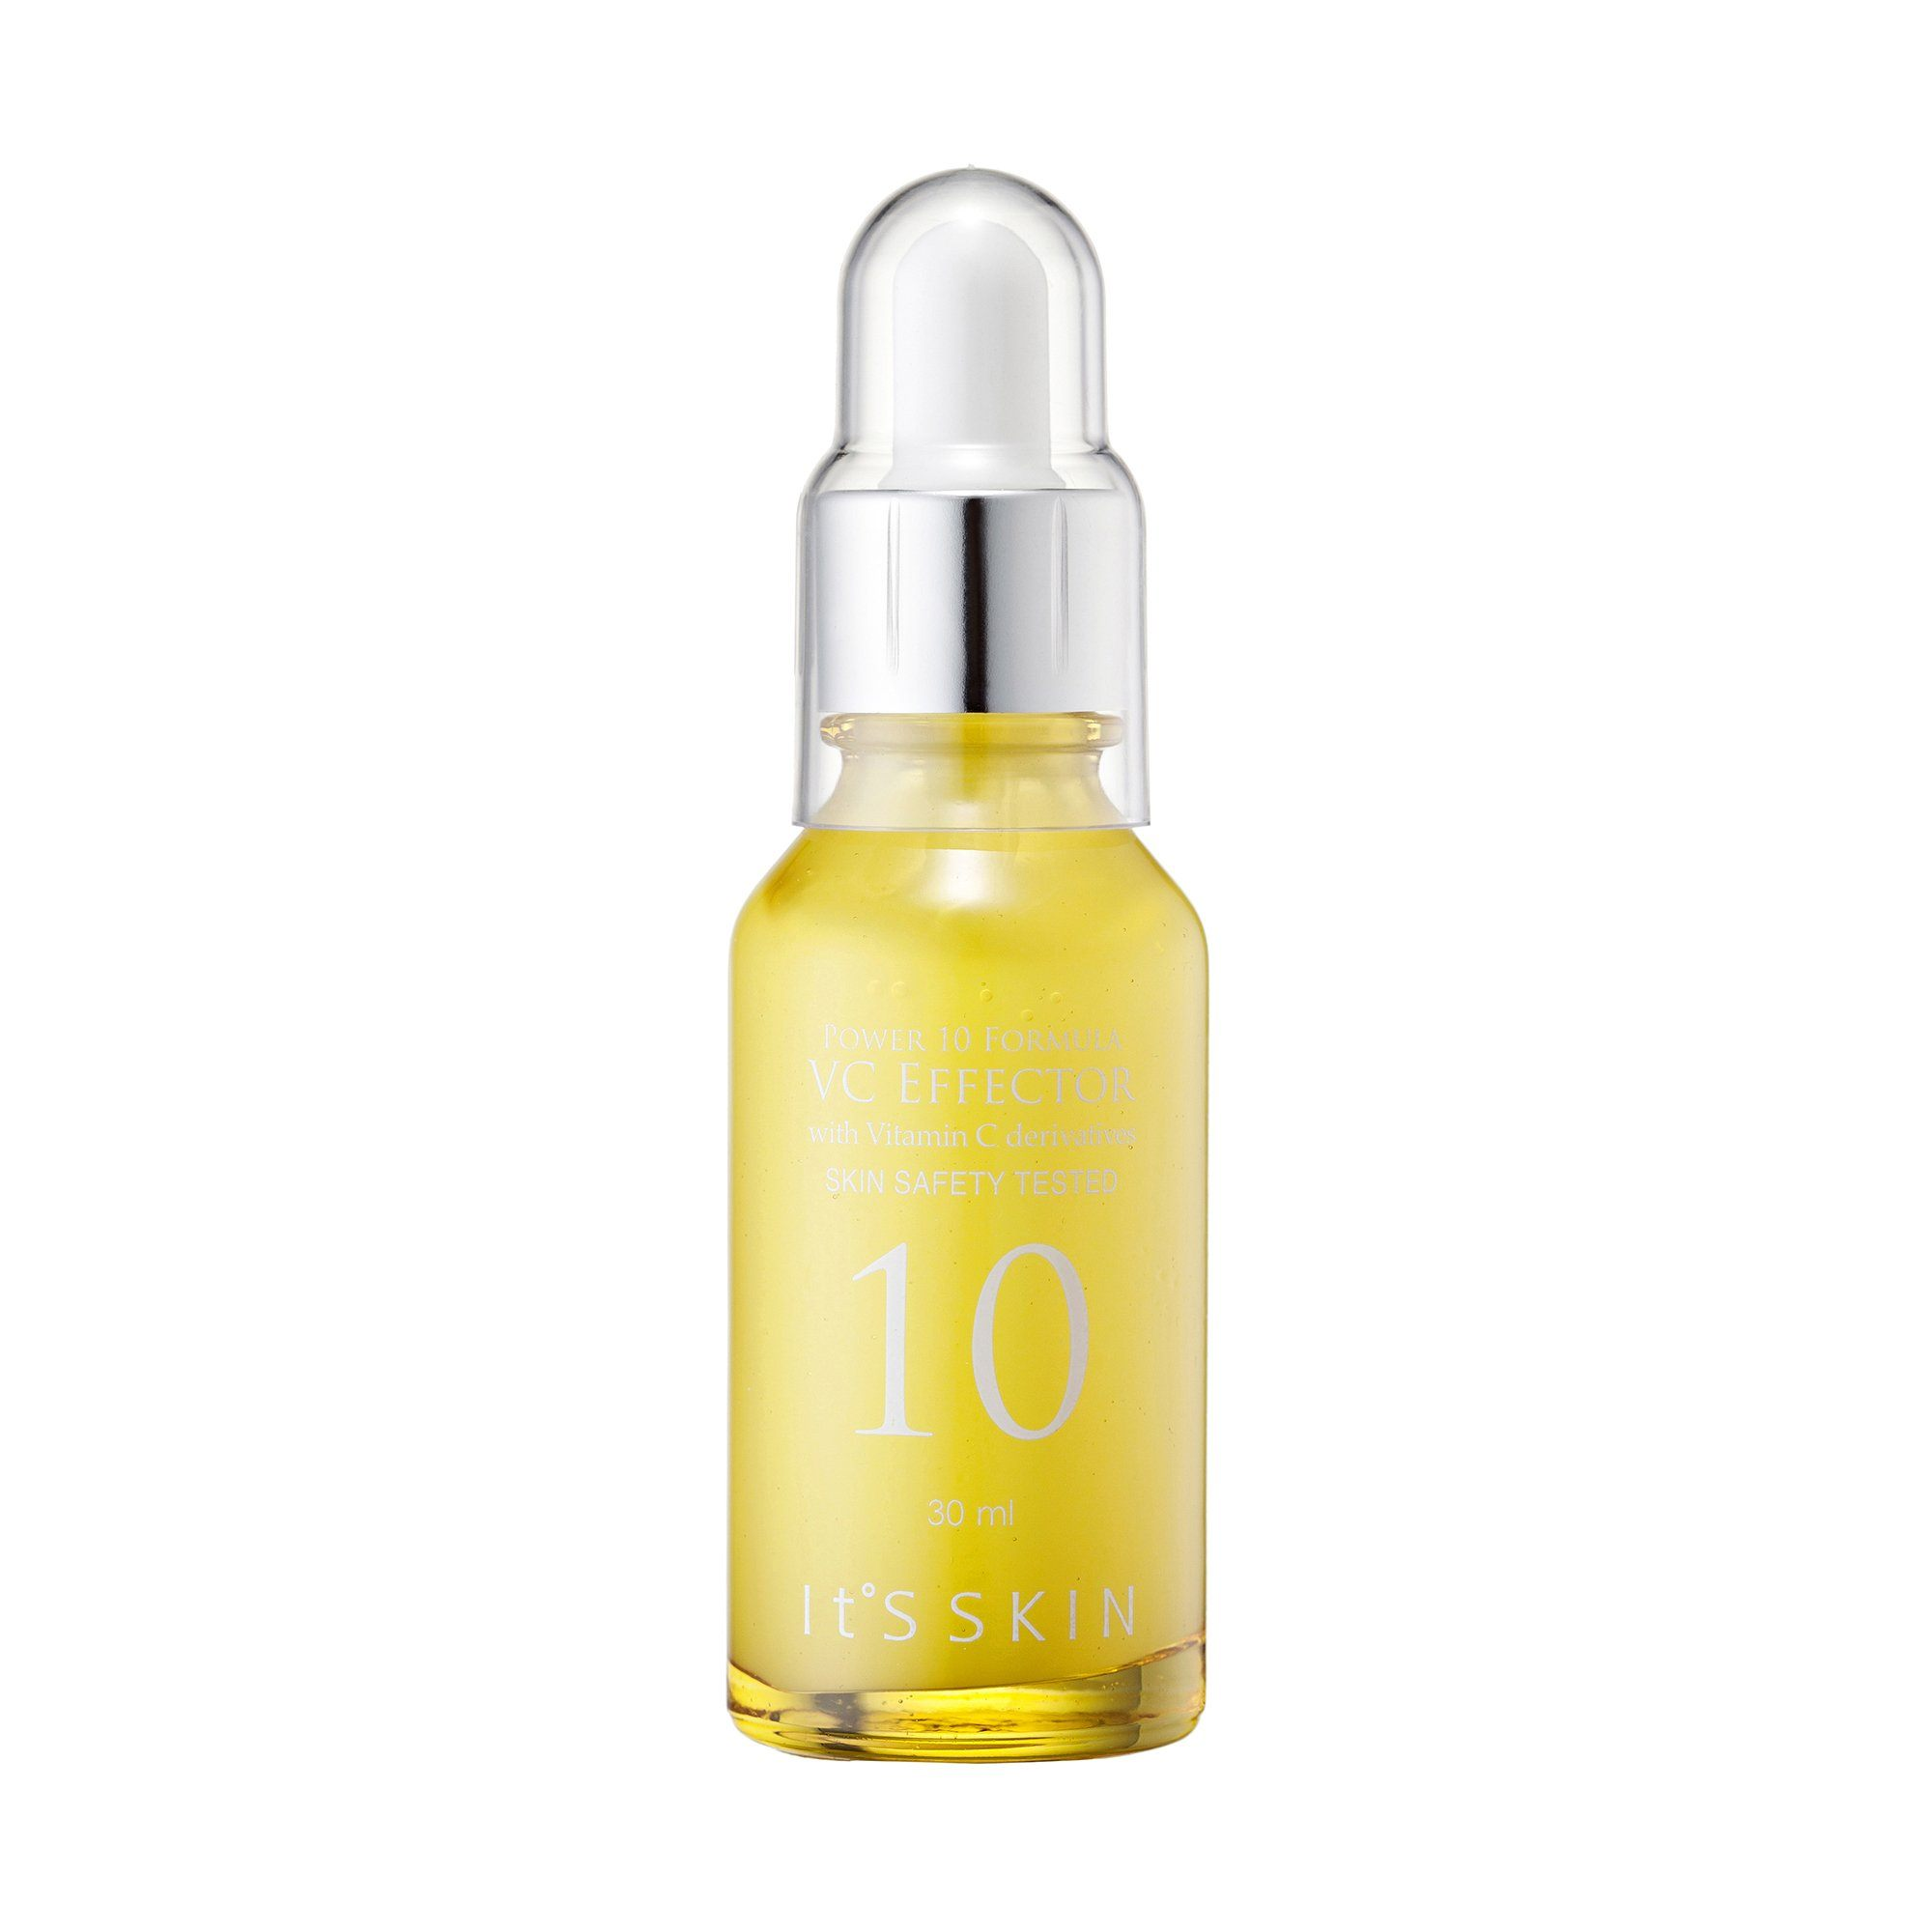 Power 10 Formula VC Effector Serum do twarzy 30 ml